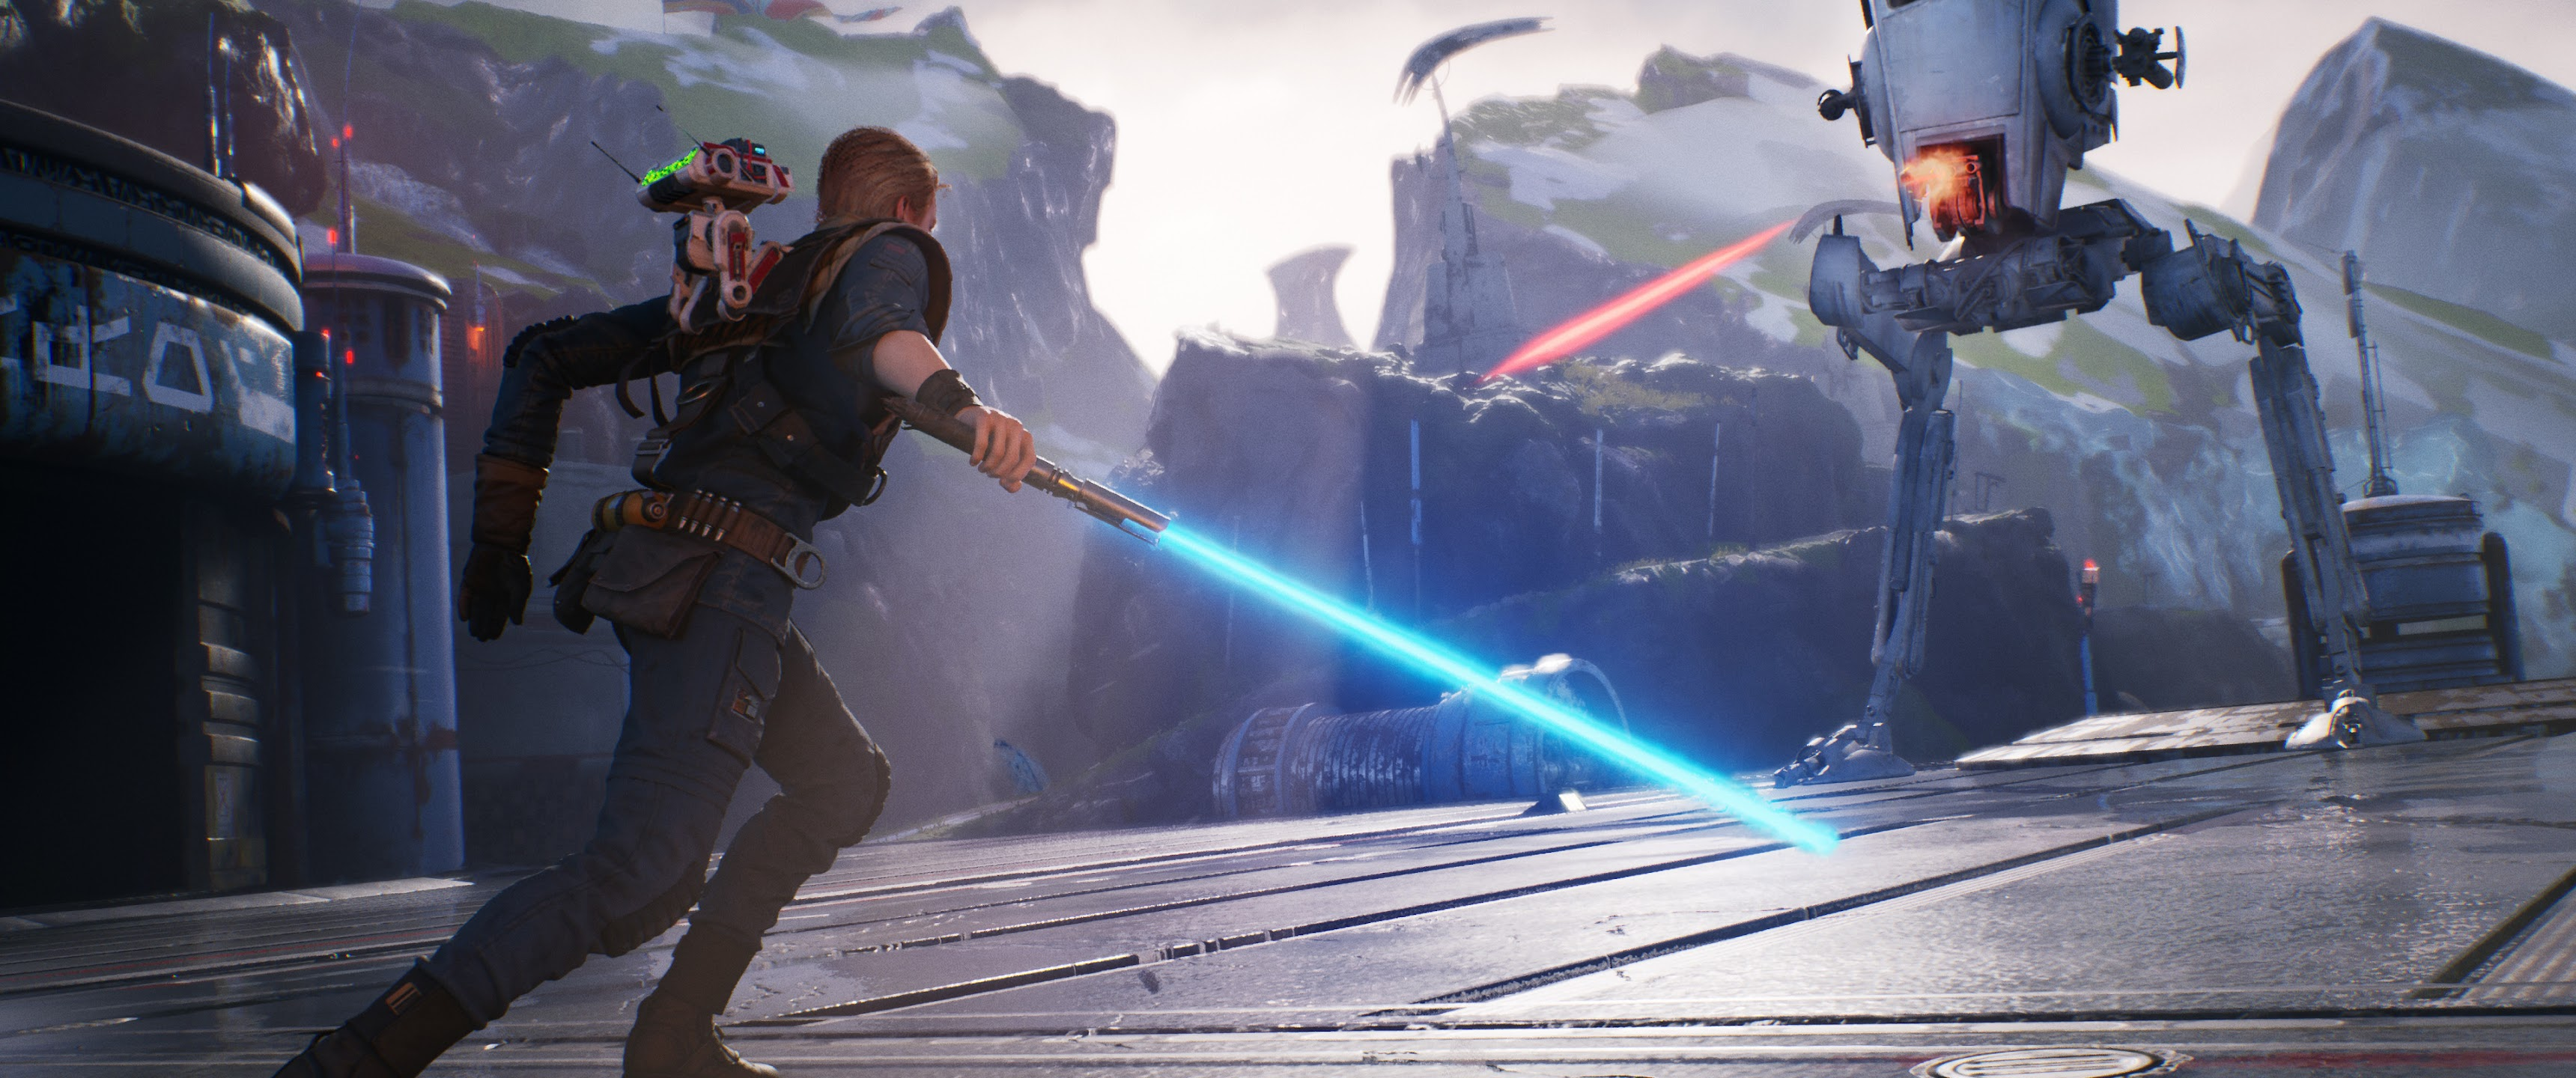 Star Wars Jedi Fallen Order Lightsaber 4k Wallpaper 21